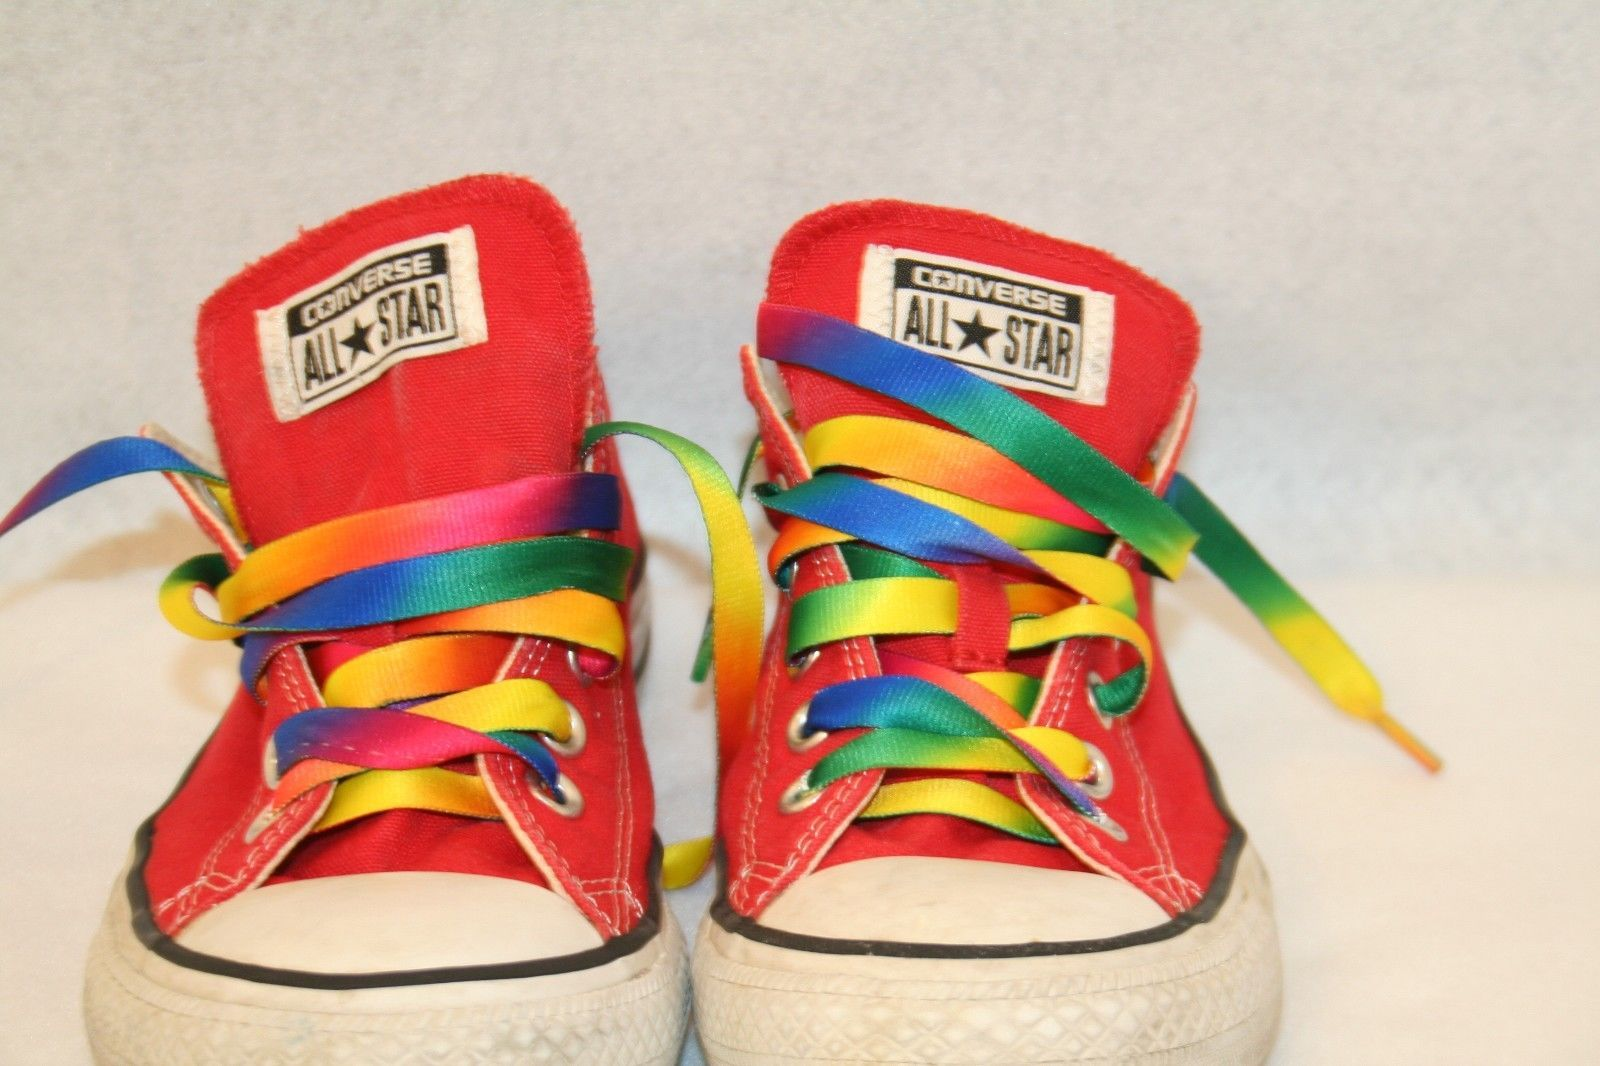 Primary image for Converse All Star Canvas Low Red 6 1/2  Shoes Multi-color Rainbow laces Cosplay